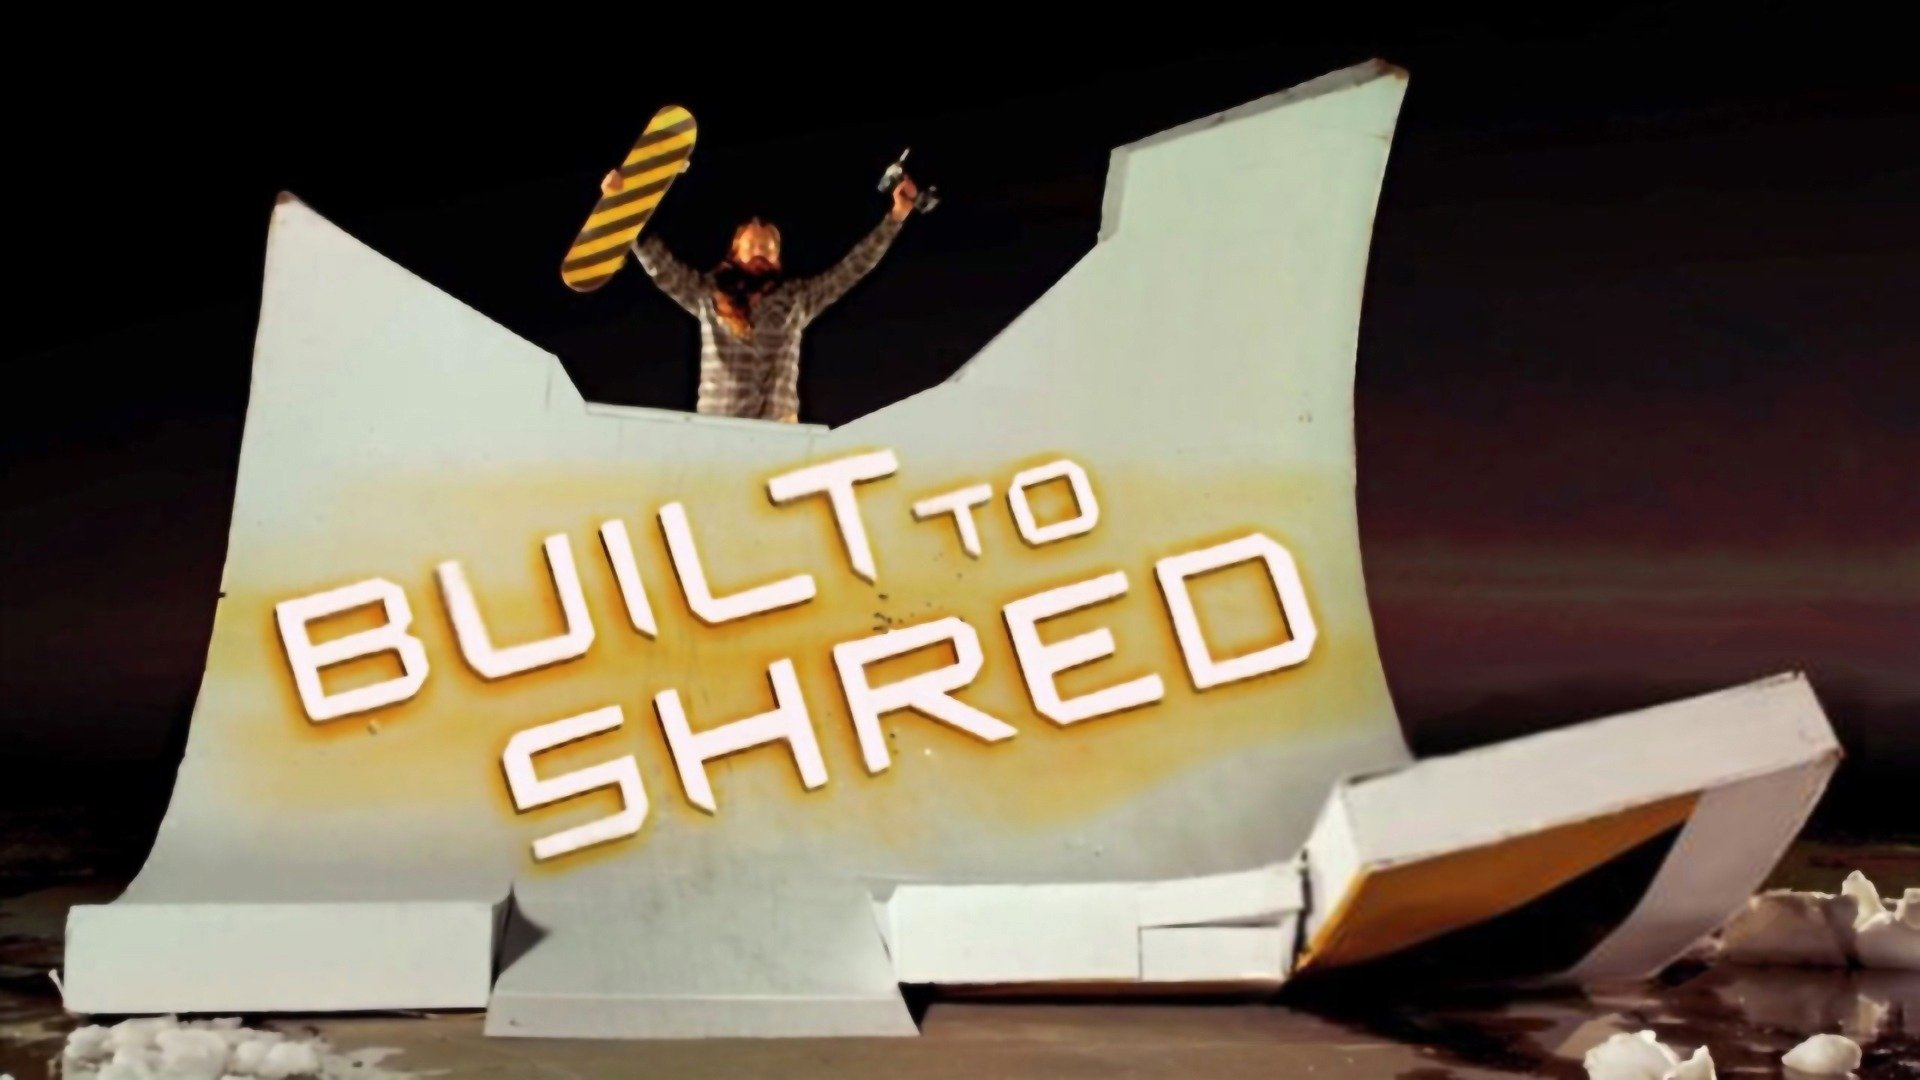 Built to Shred